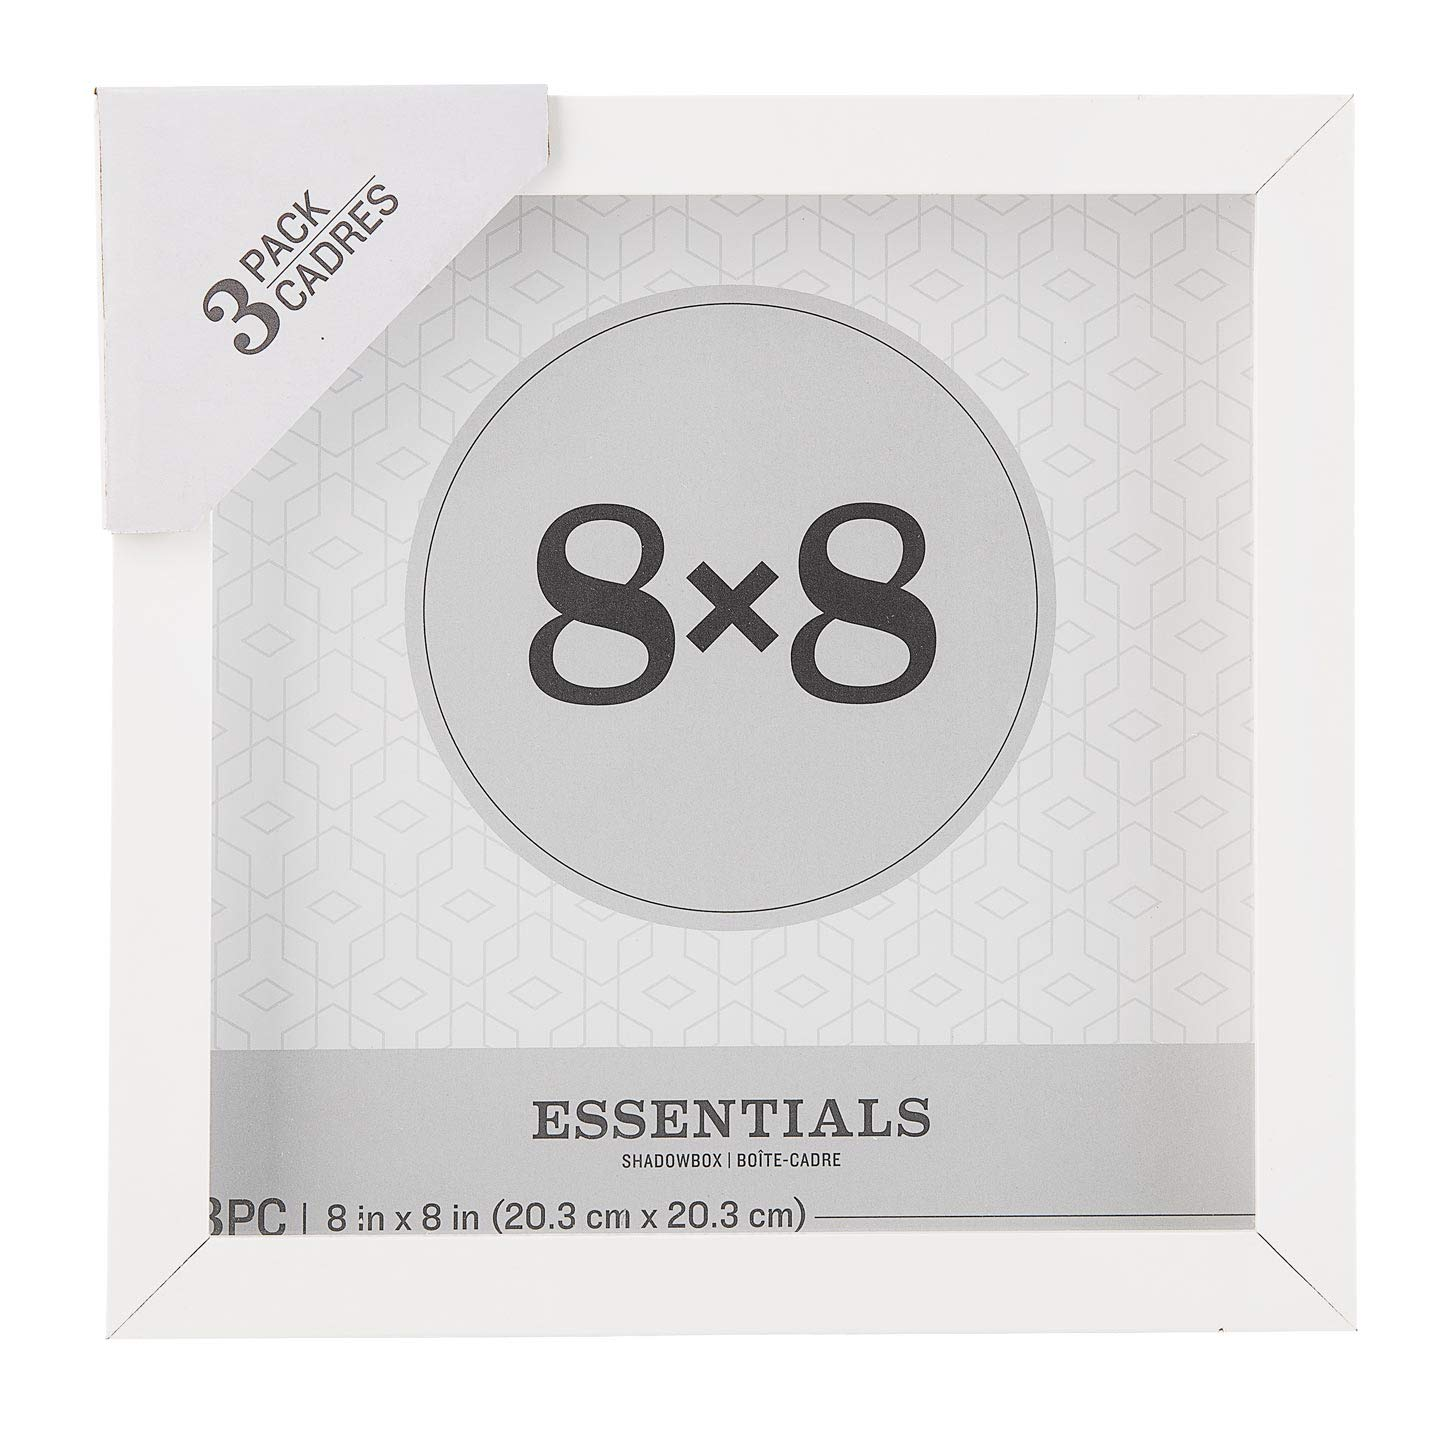 Darice Essentials White 8 x 8 inches, 3 Pieces Shadow Box by Darice